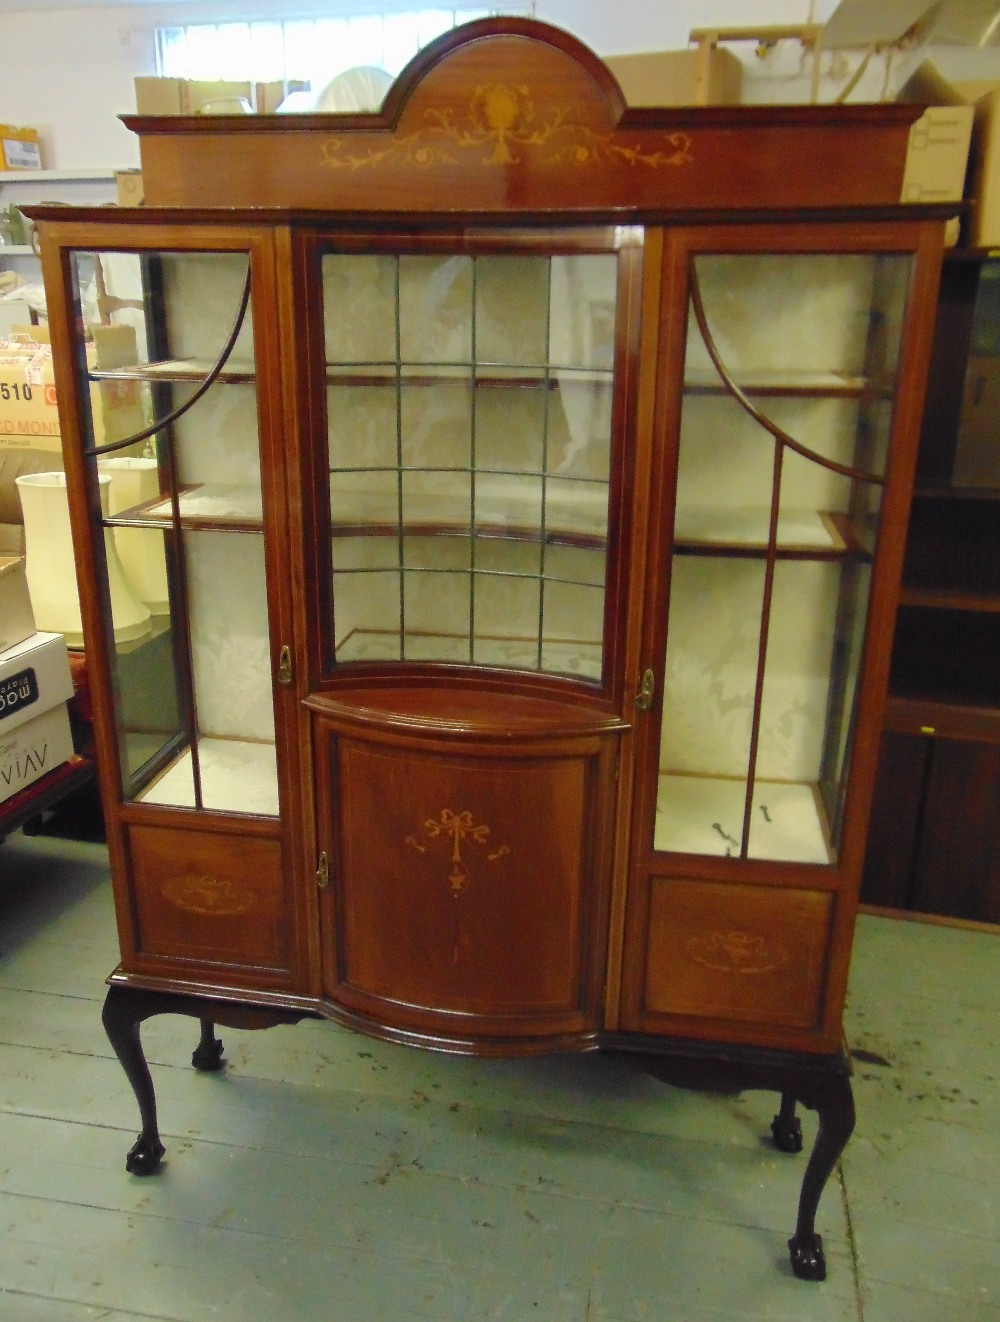 Lot 11 - An Edwardian shaped rectangular inlaid mahogany glazed display cabinet on four cabriole legs